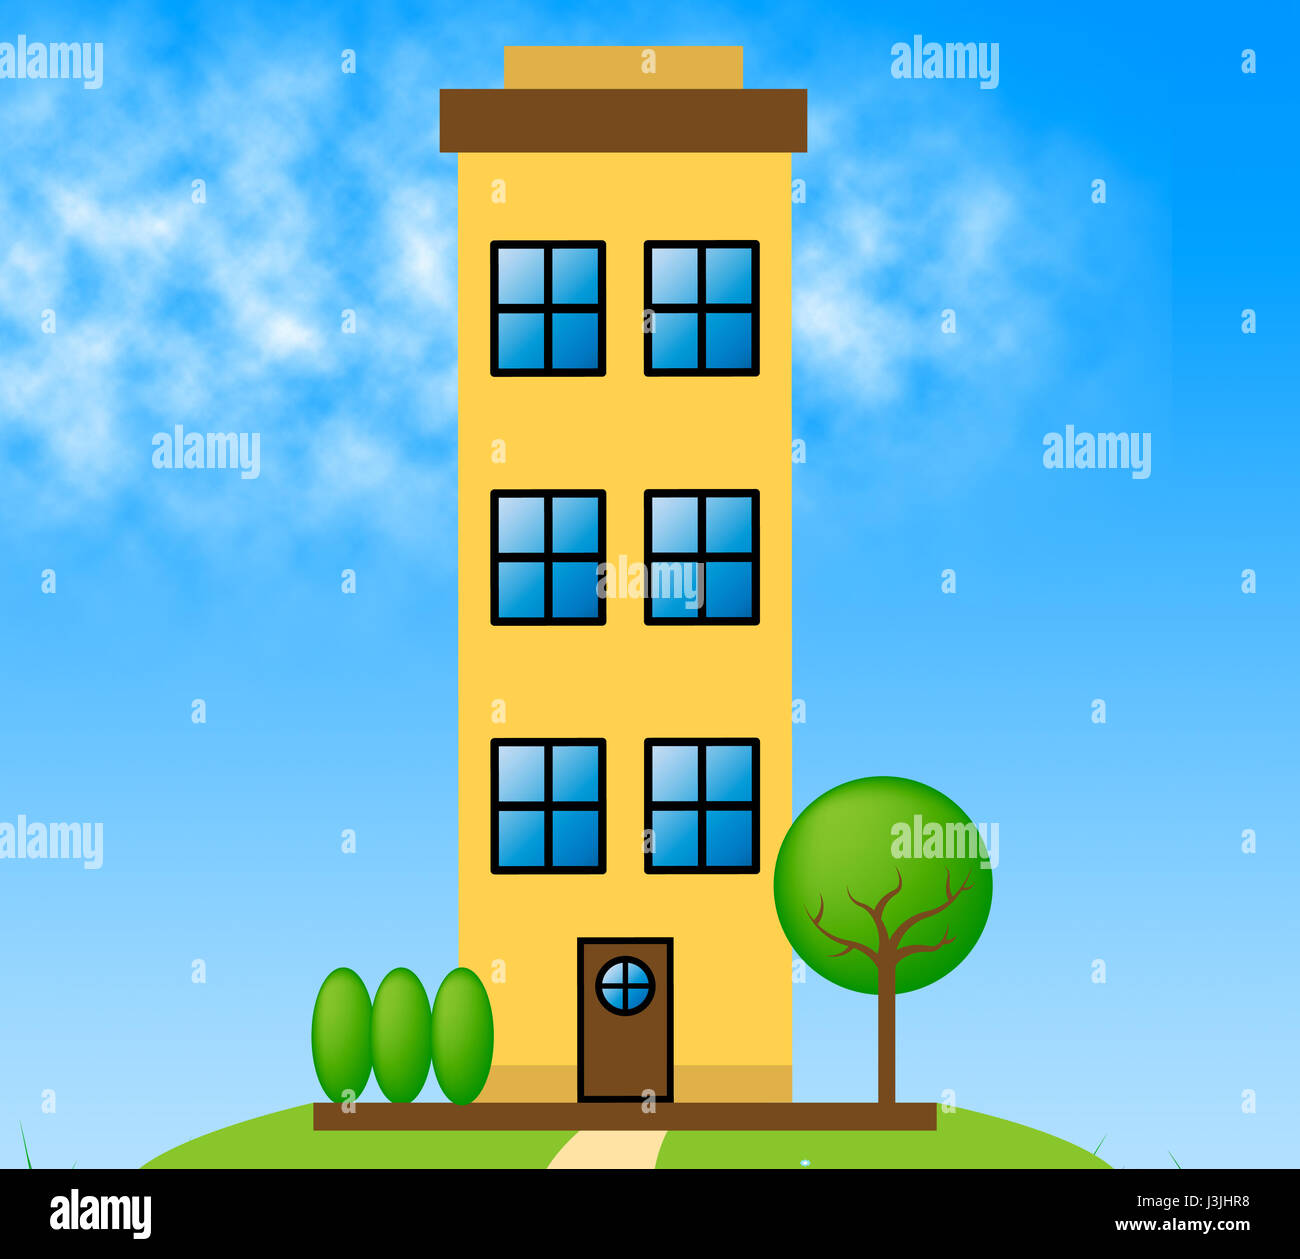 Apartment Meaning: Countryside Apartment Building Meaning Condo Property 3d